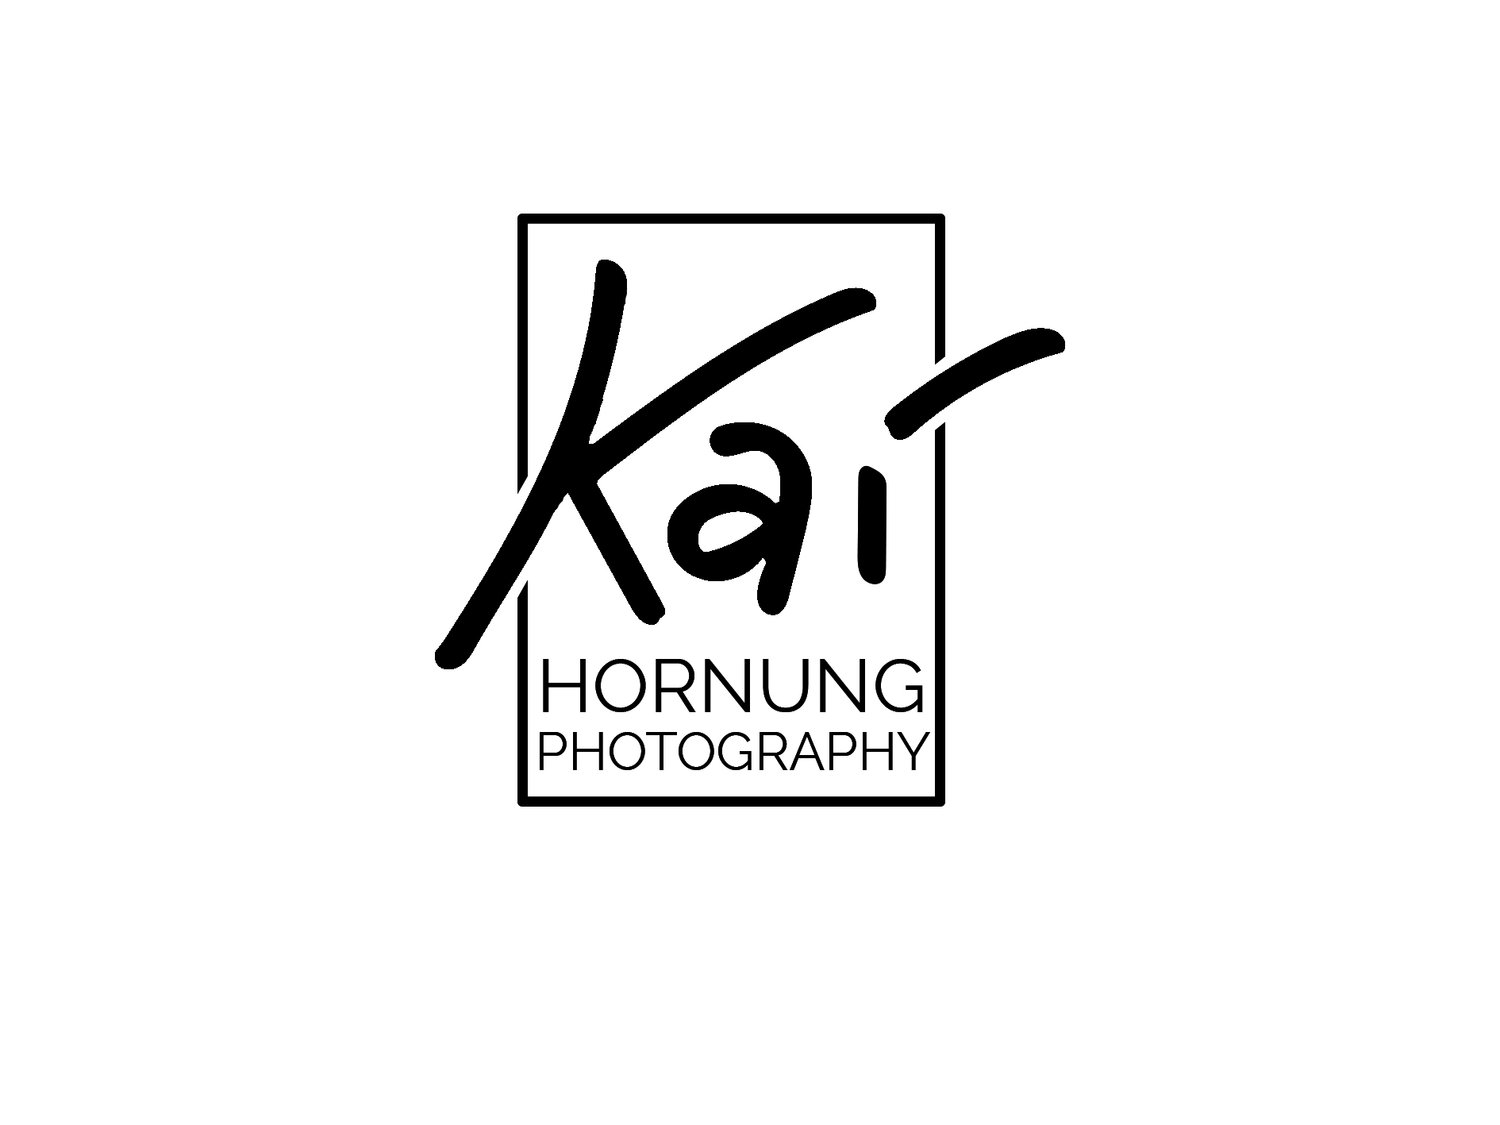 KAI HORNUNG PHOTOGRAPHY